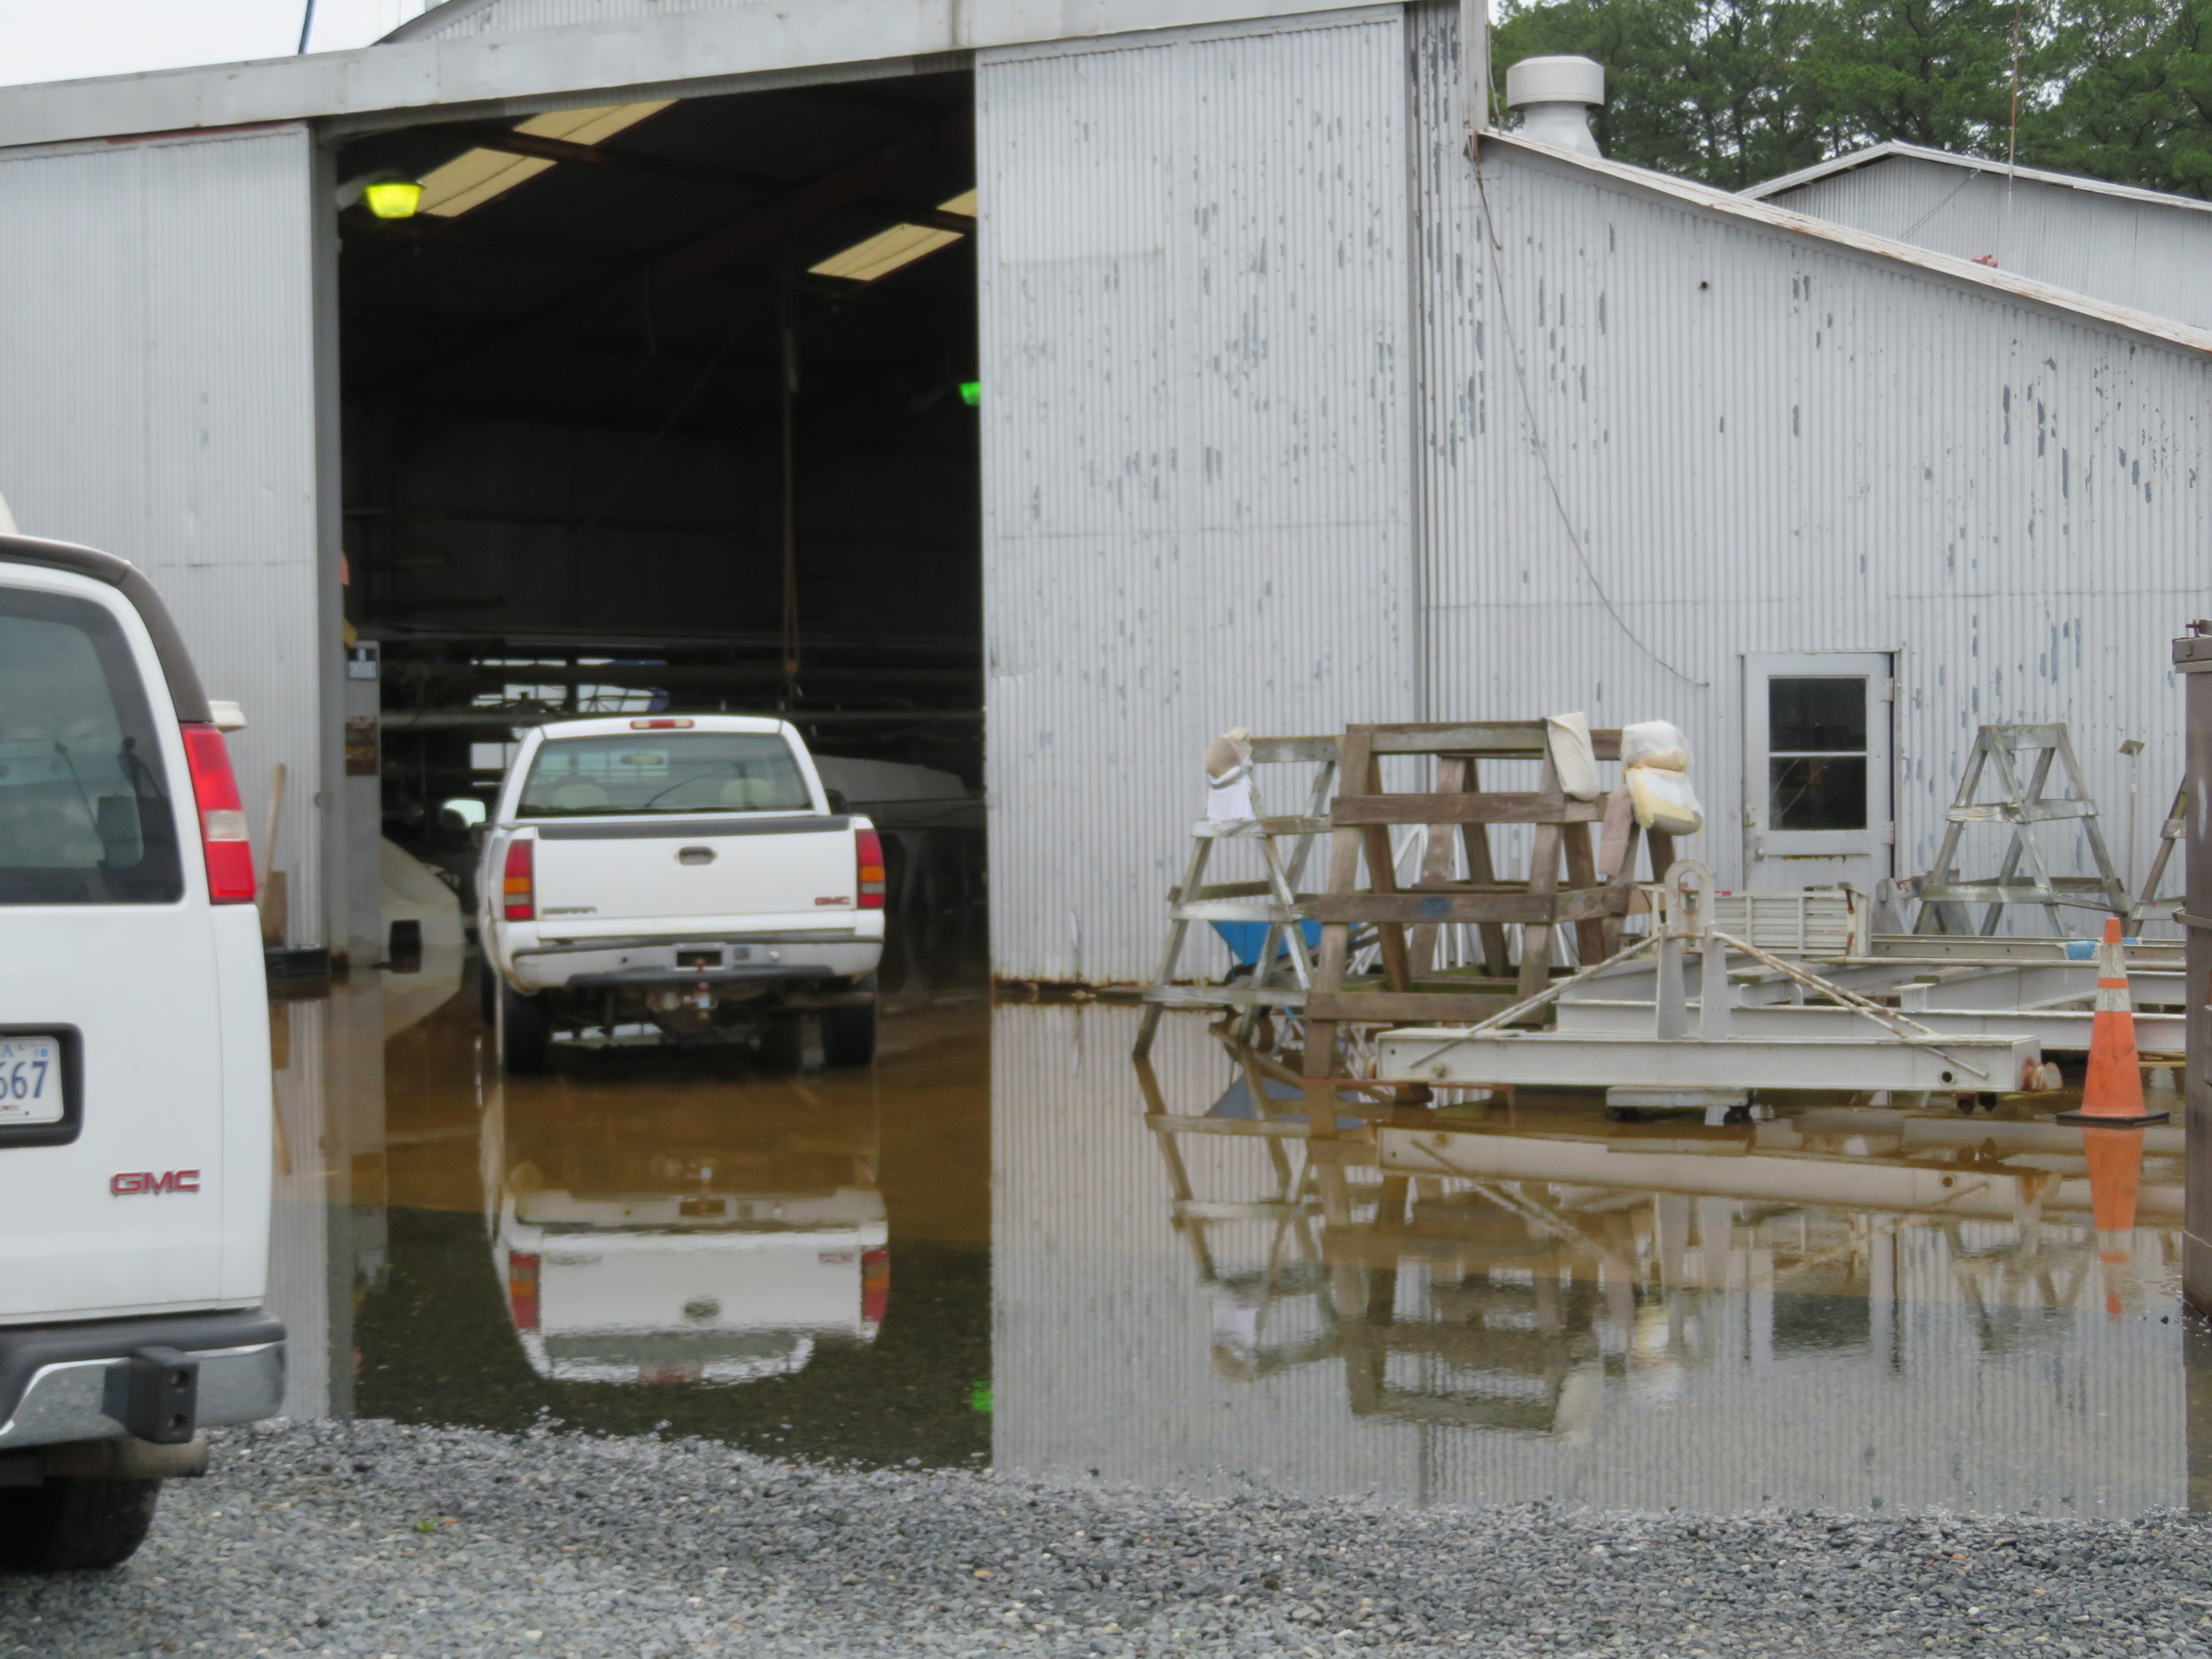 It's been wet and rainy in Chesapeake and part of the boatyard remains flooded.